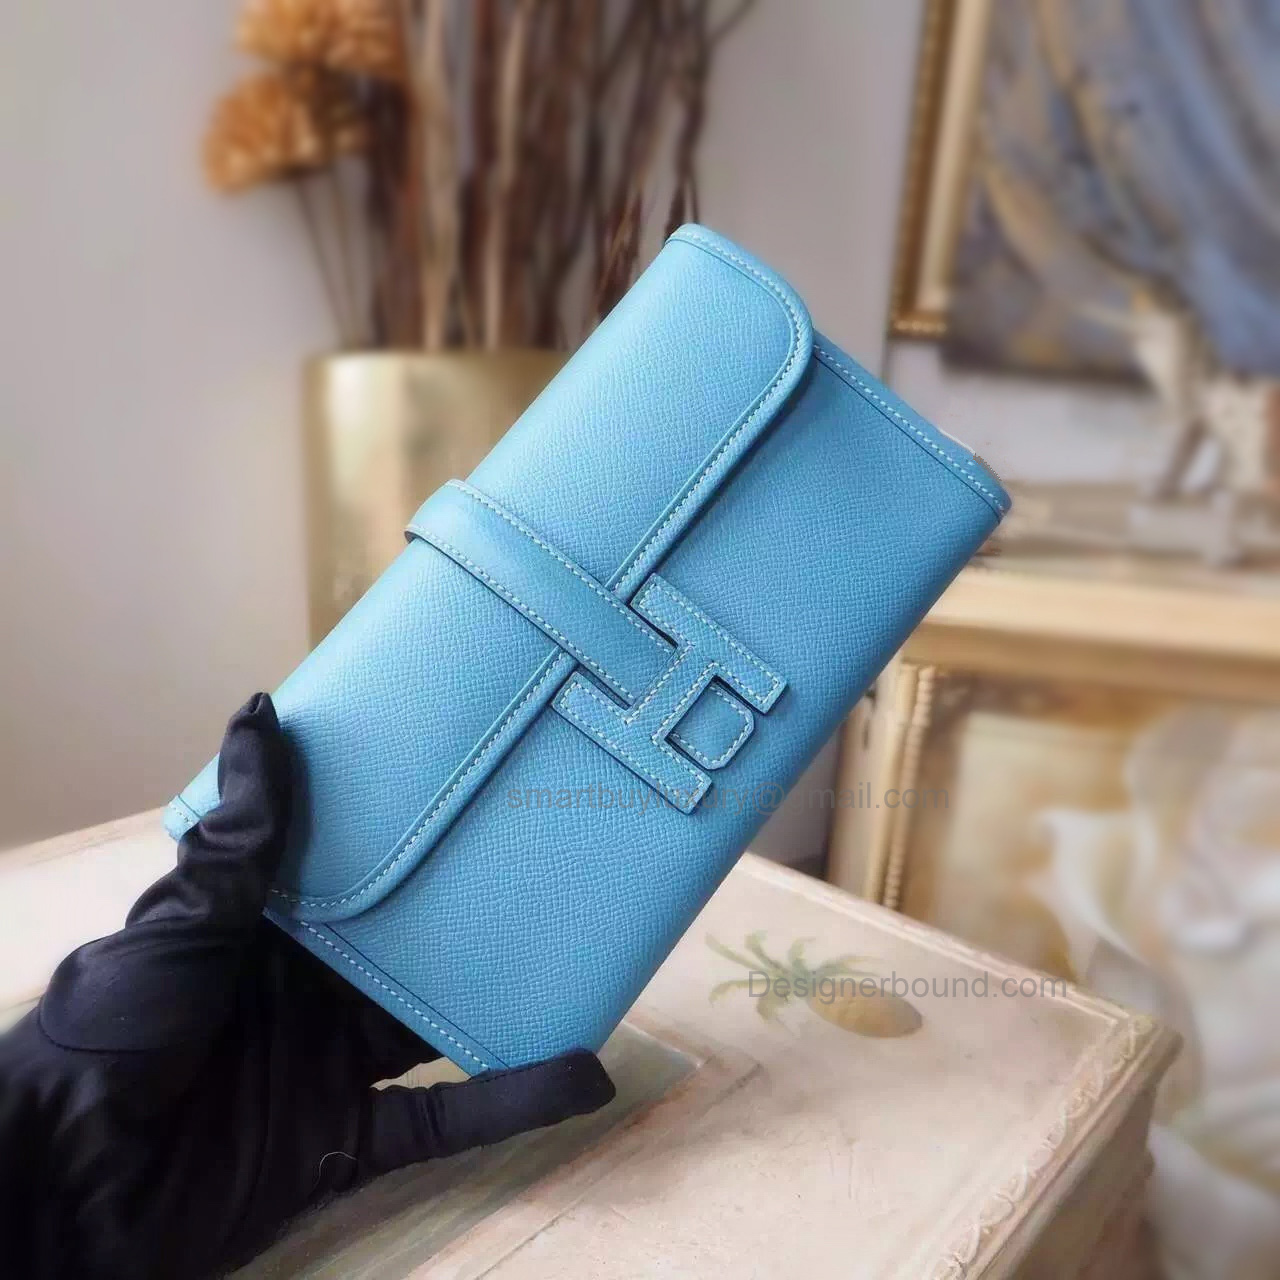 Copy Hermes Jige Mini Clutch Handmade in Blue Jean ck75 Epsom Calfskin